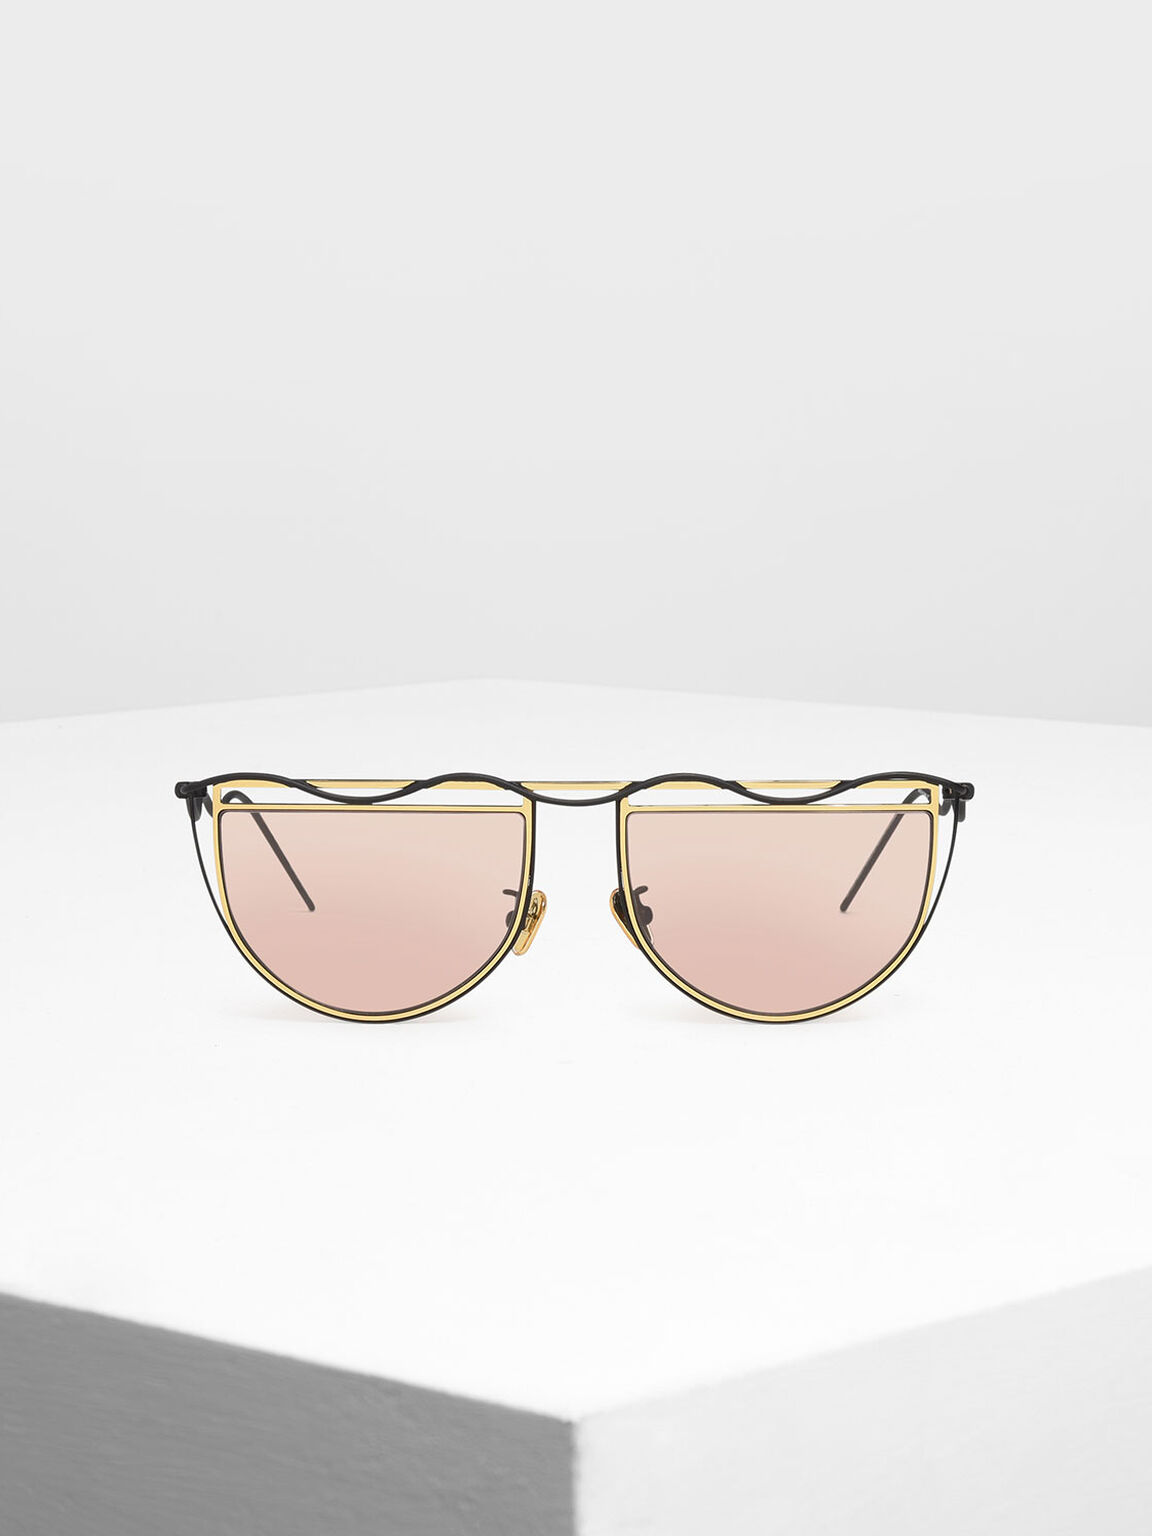 Drop Temple Semi-Circle Sunglasses, Gold, hi-res